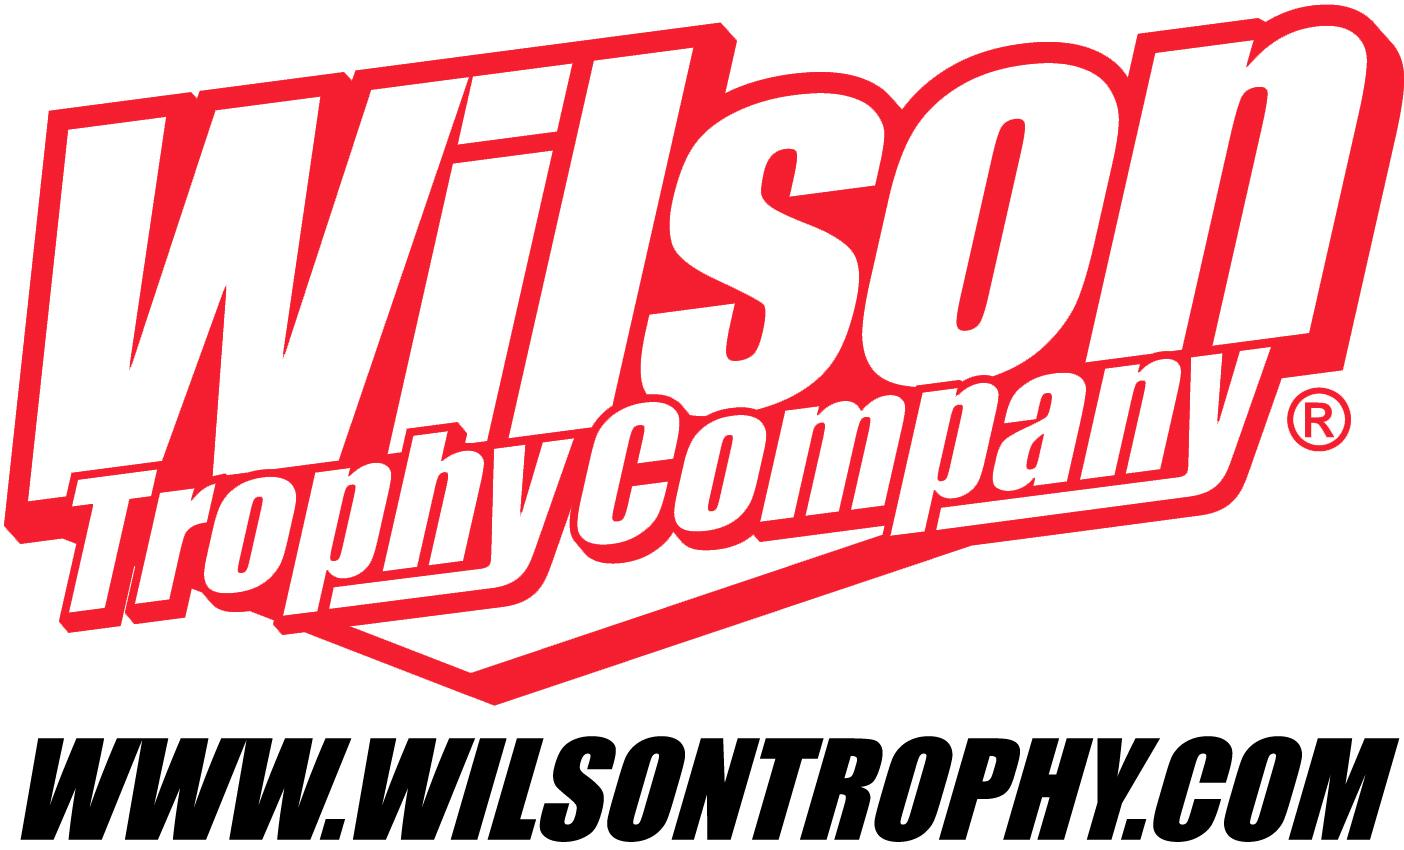 Wilson Trophy of California